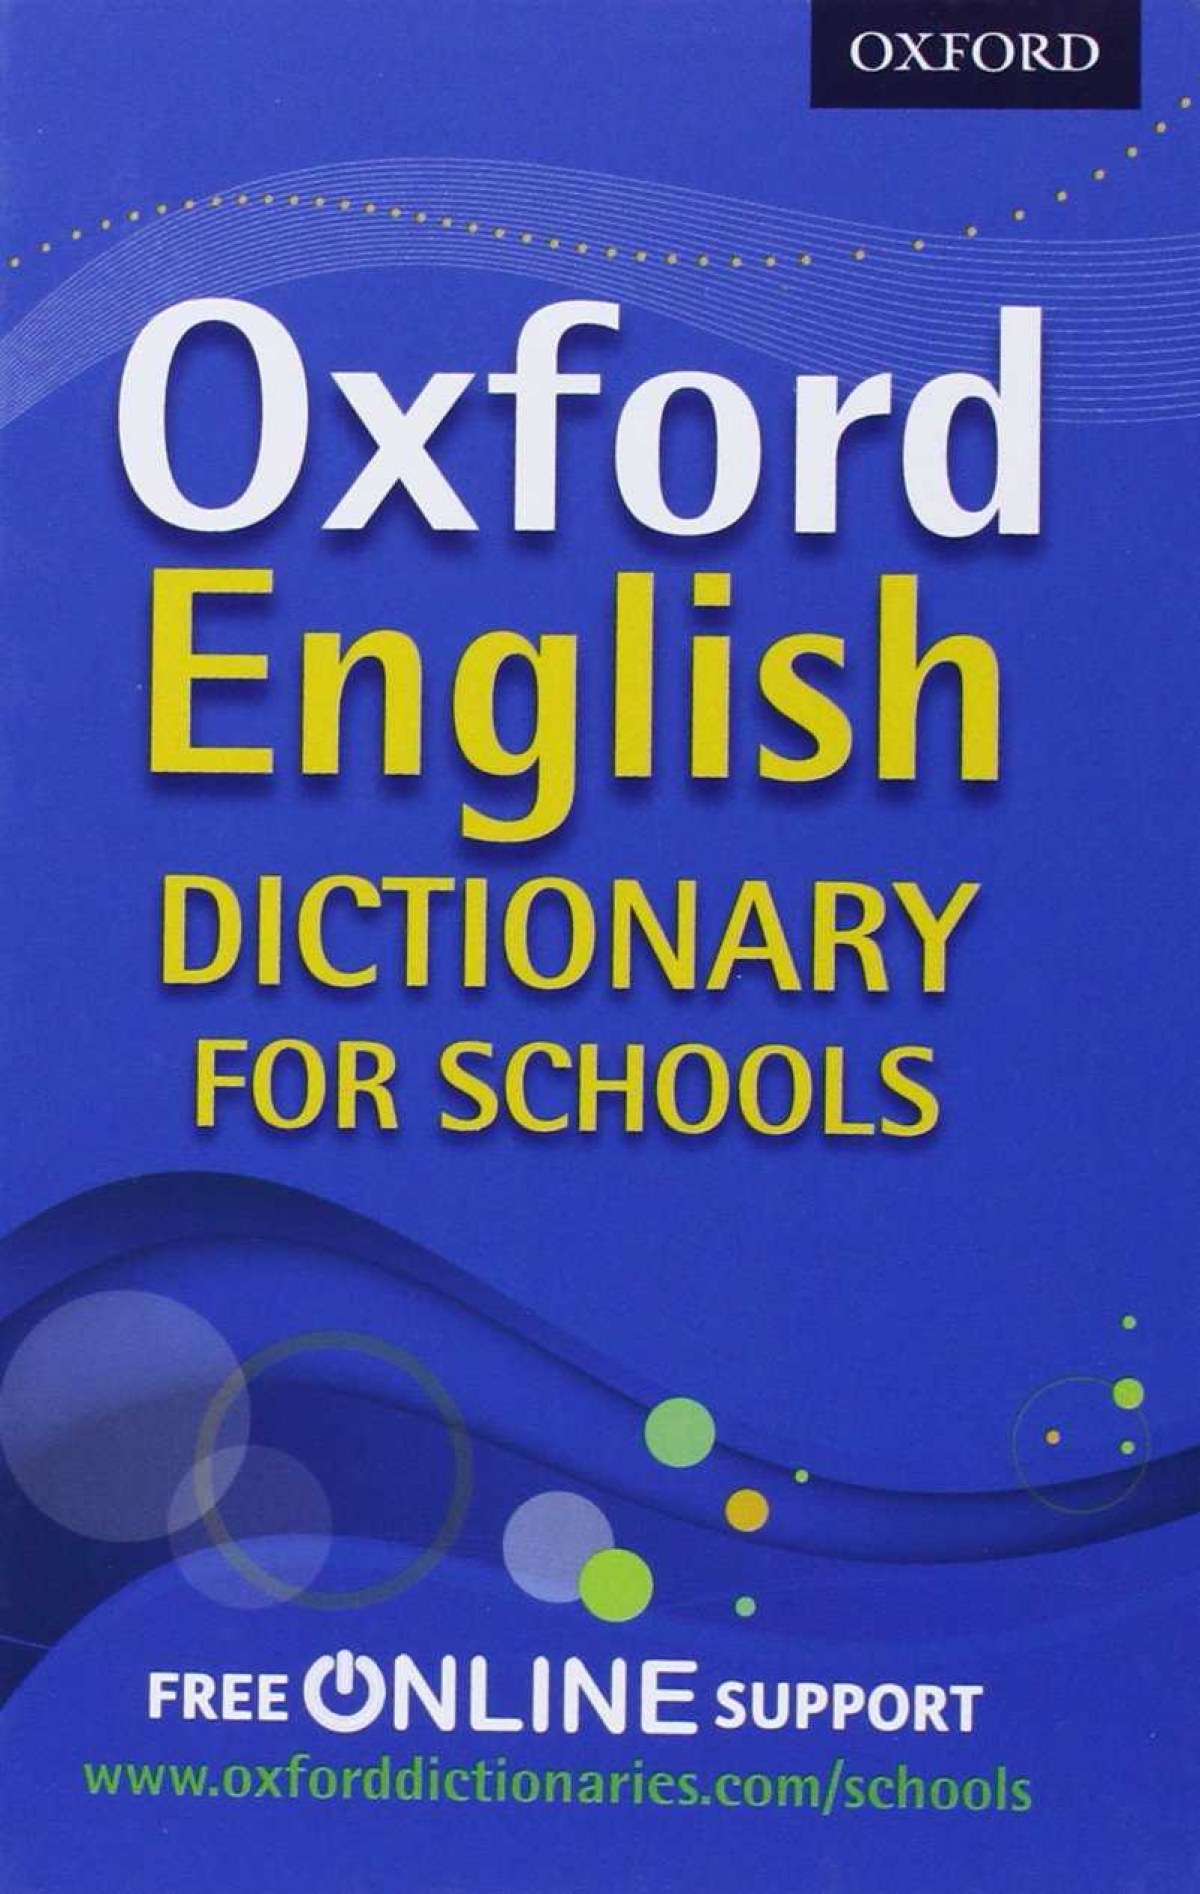 OXFORD ENGLISH DICTIONARY FOR SCHOOLS: BEST SECONDARY SCHOO